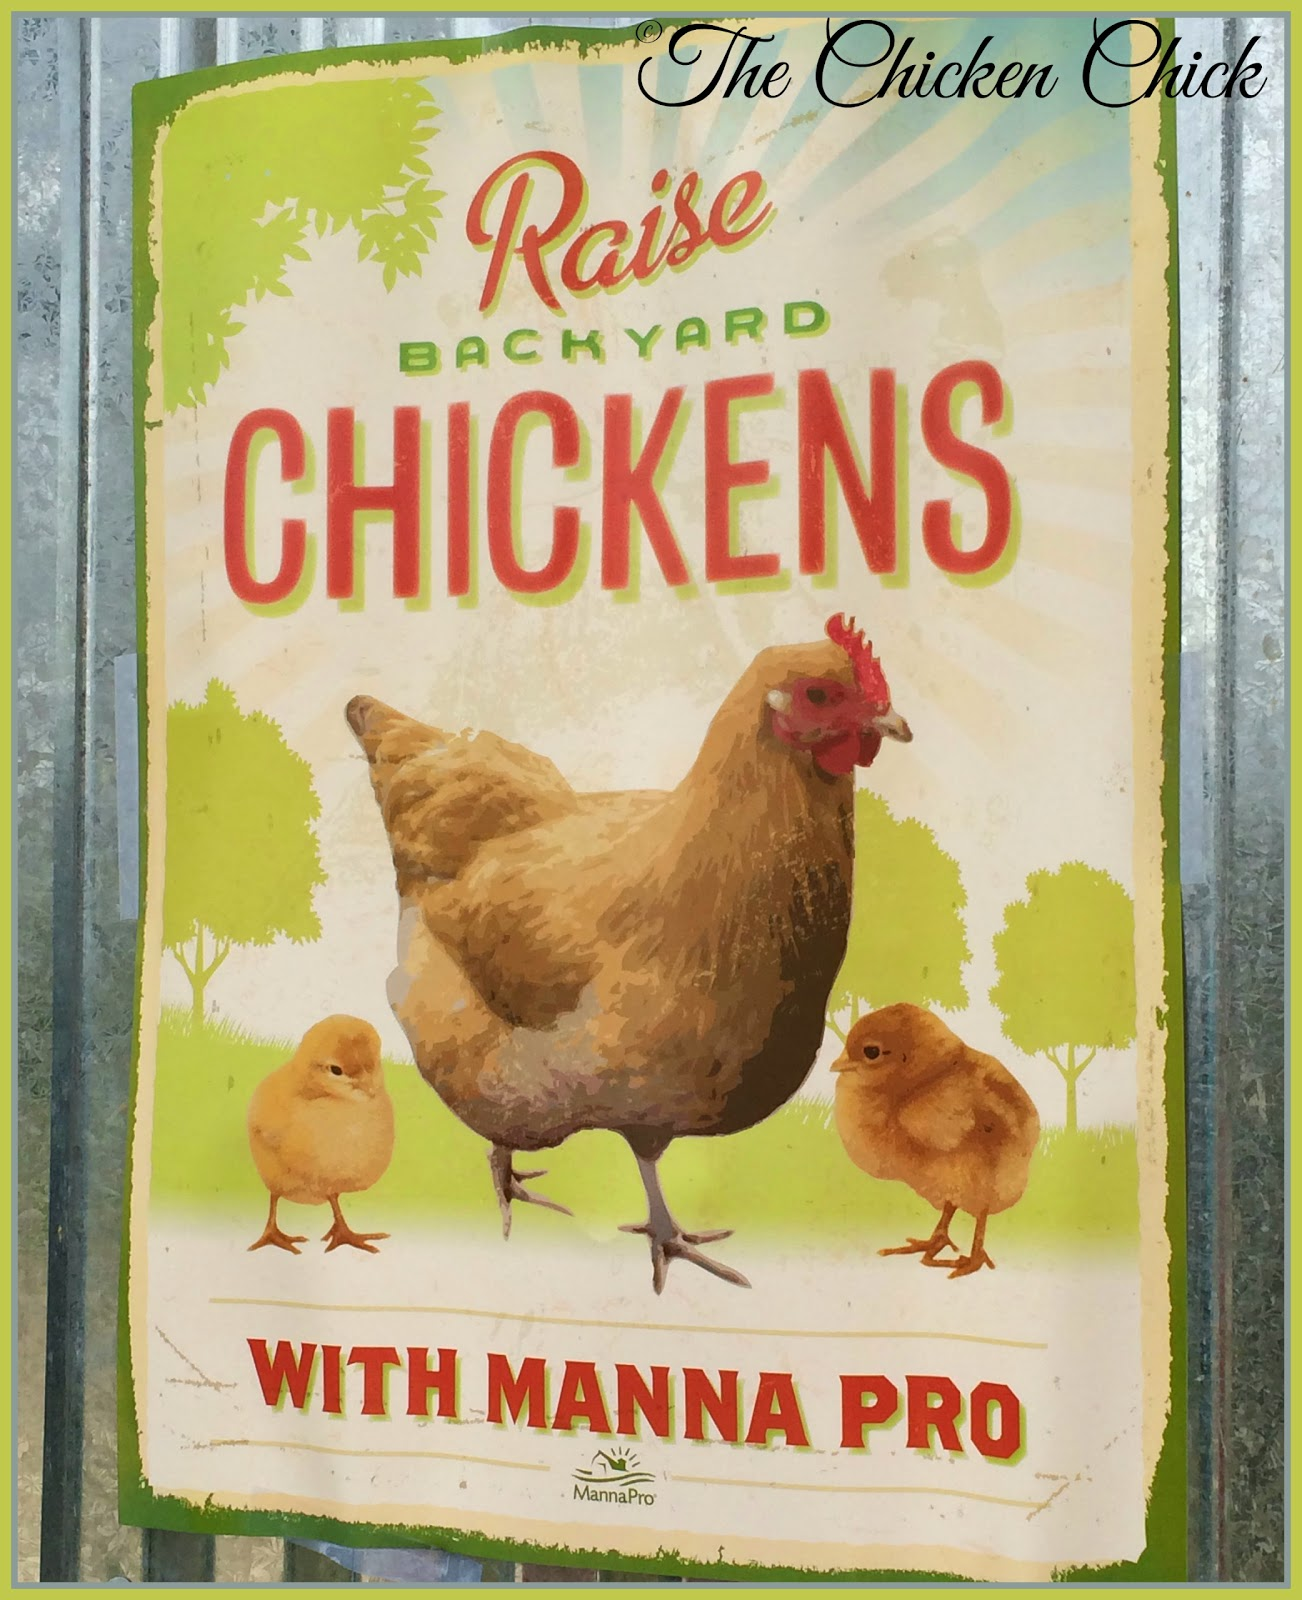 Manna Pro Poultry Poster Giveaway at The-Chicken-Chick.com